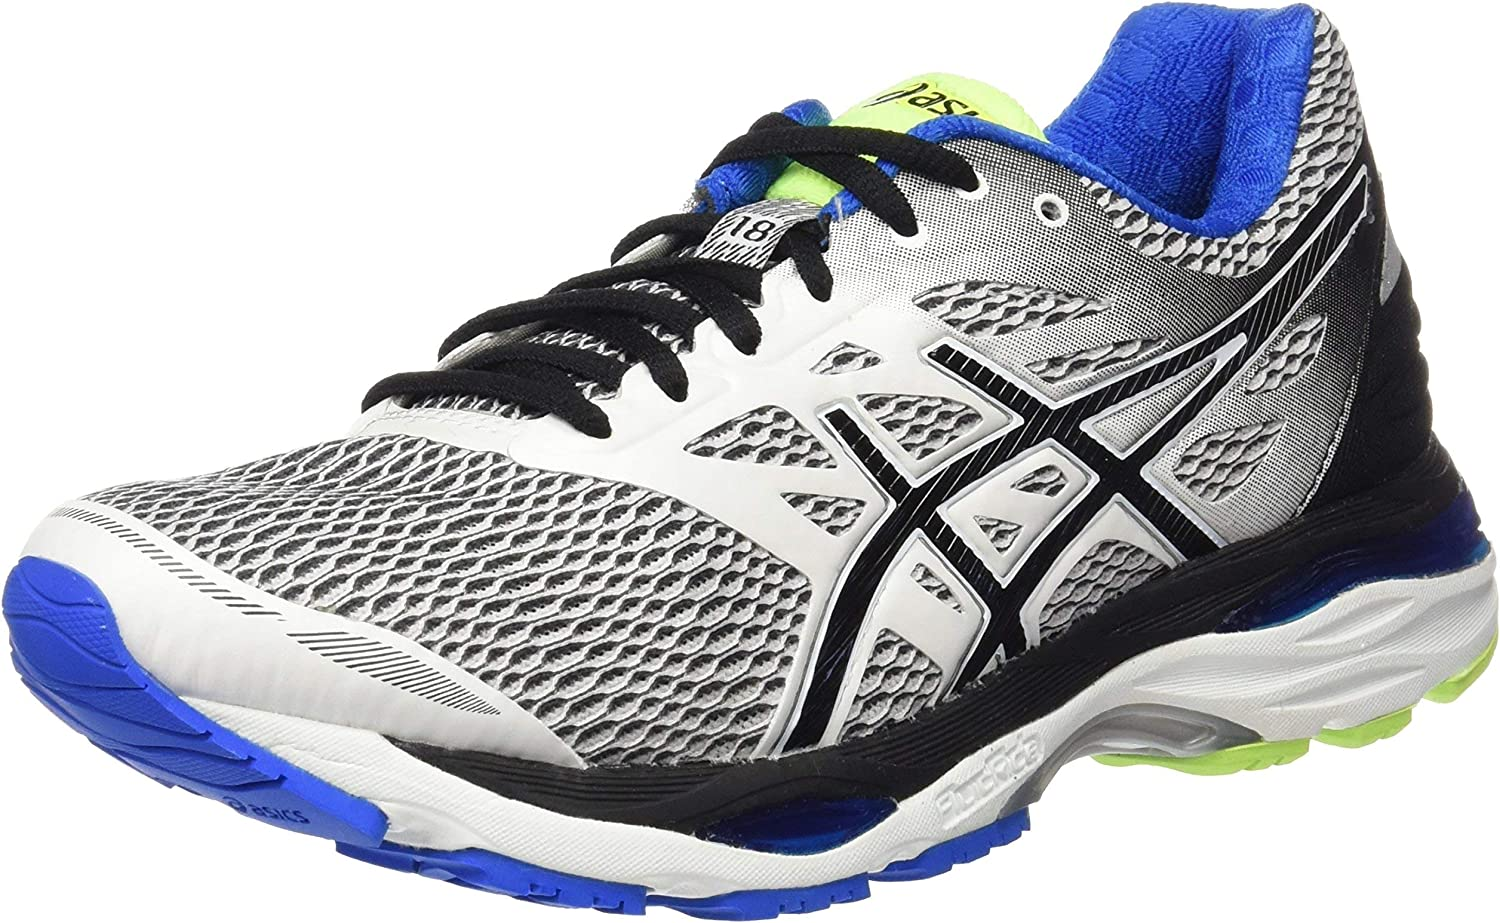 ASICS T6C3N0190, Zapatillas De Running para Hombre, Blanco (White / Black / Electric Blue), 40 EU: Amazon.es: Zapatos y complementos